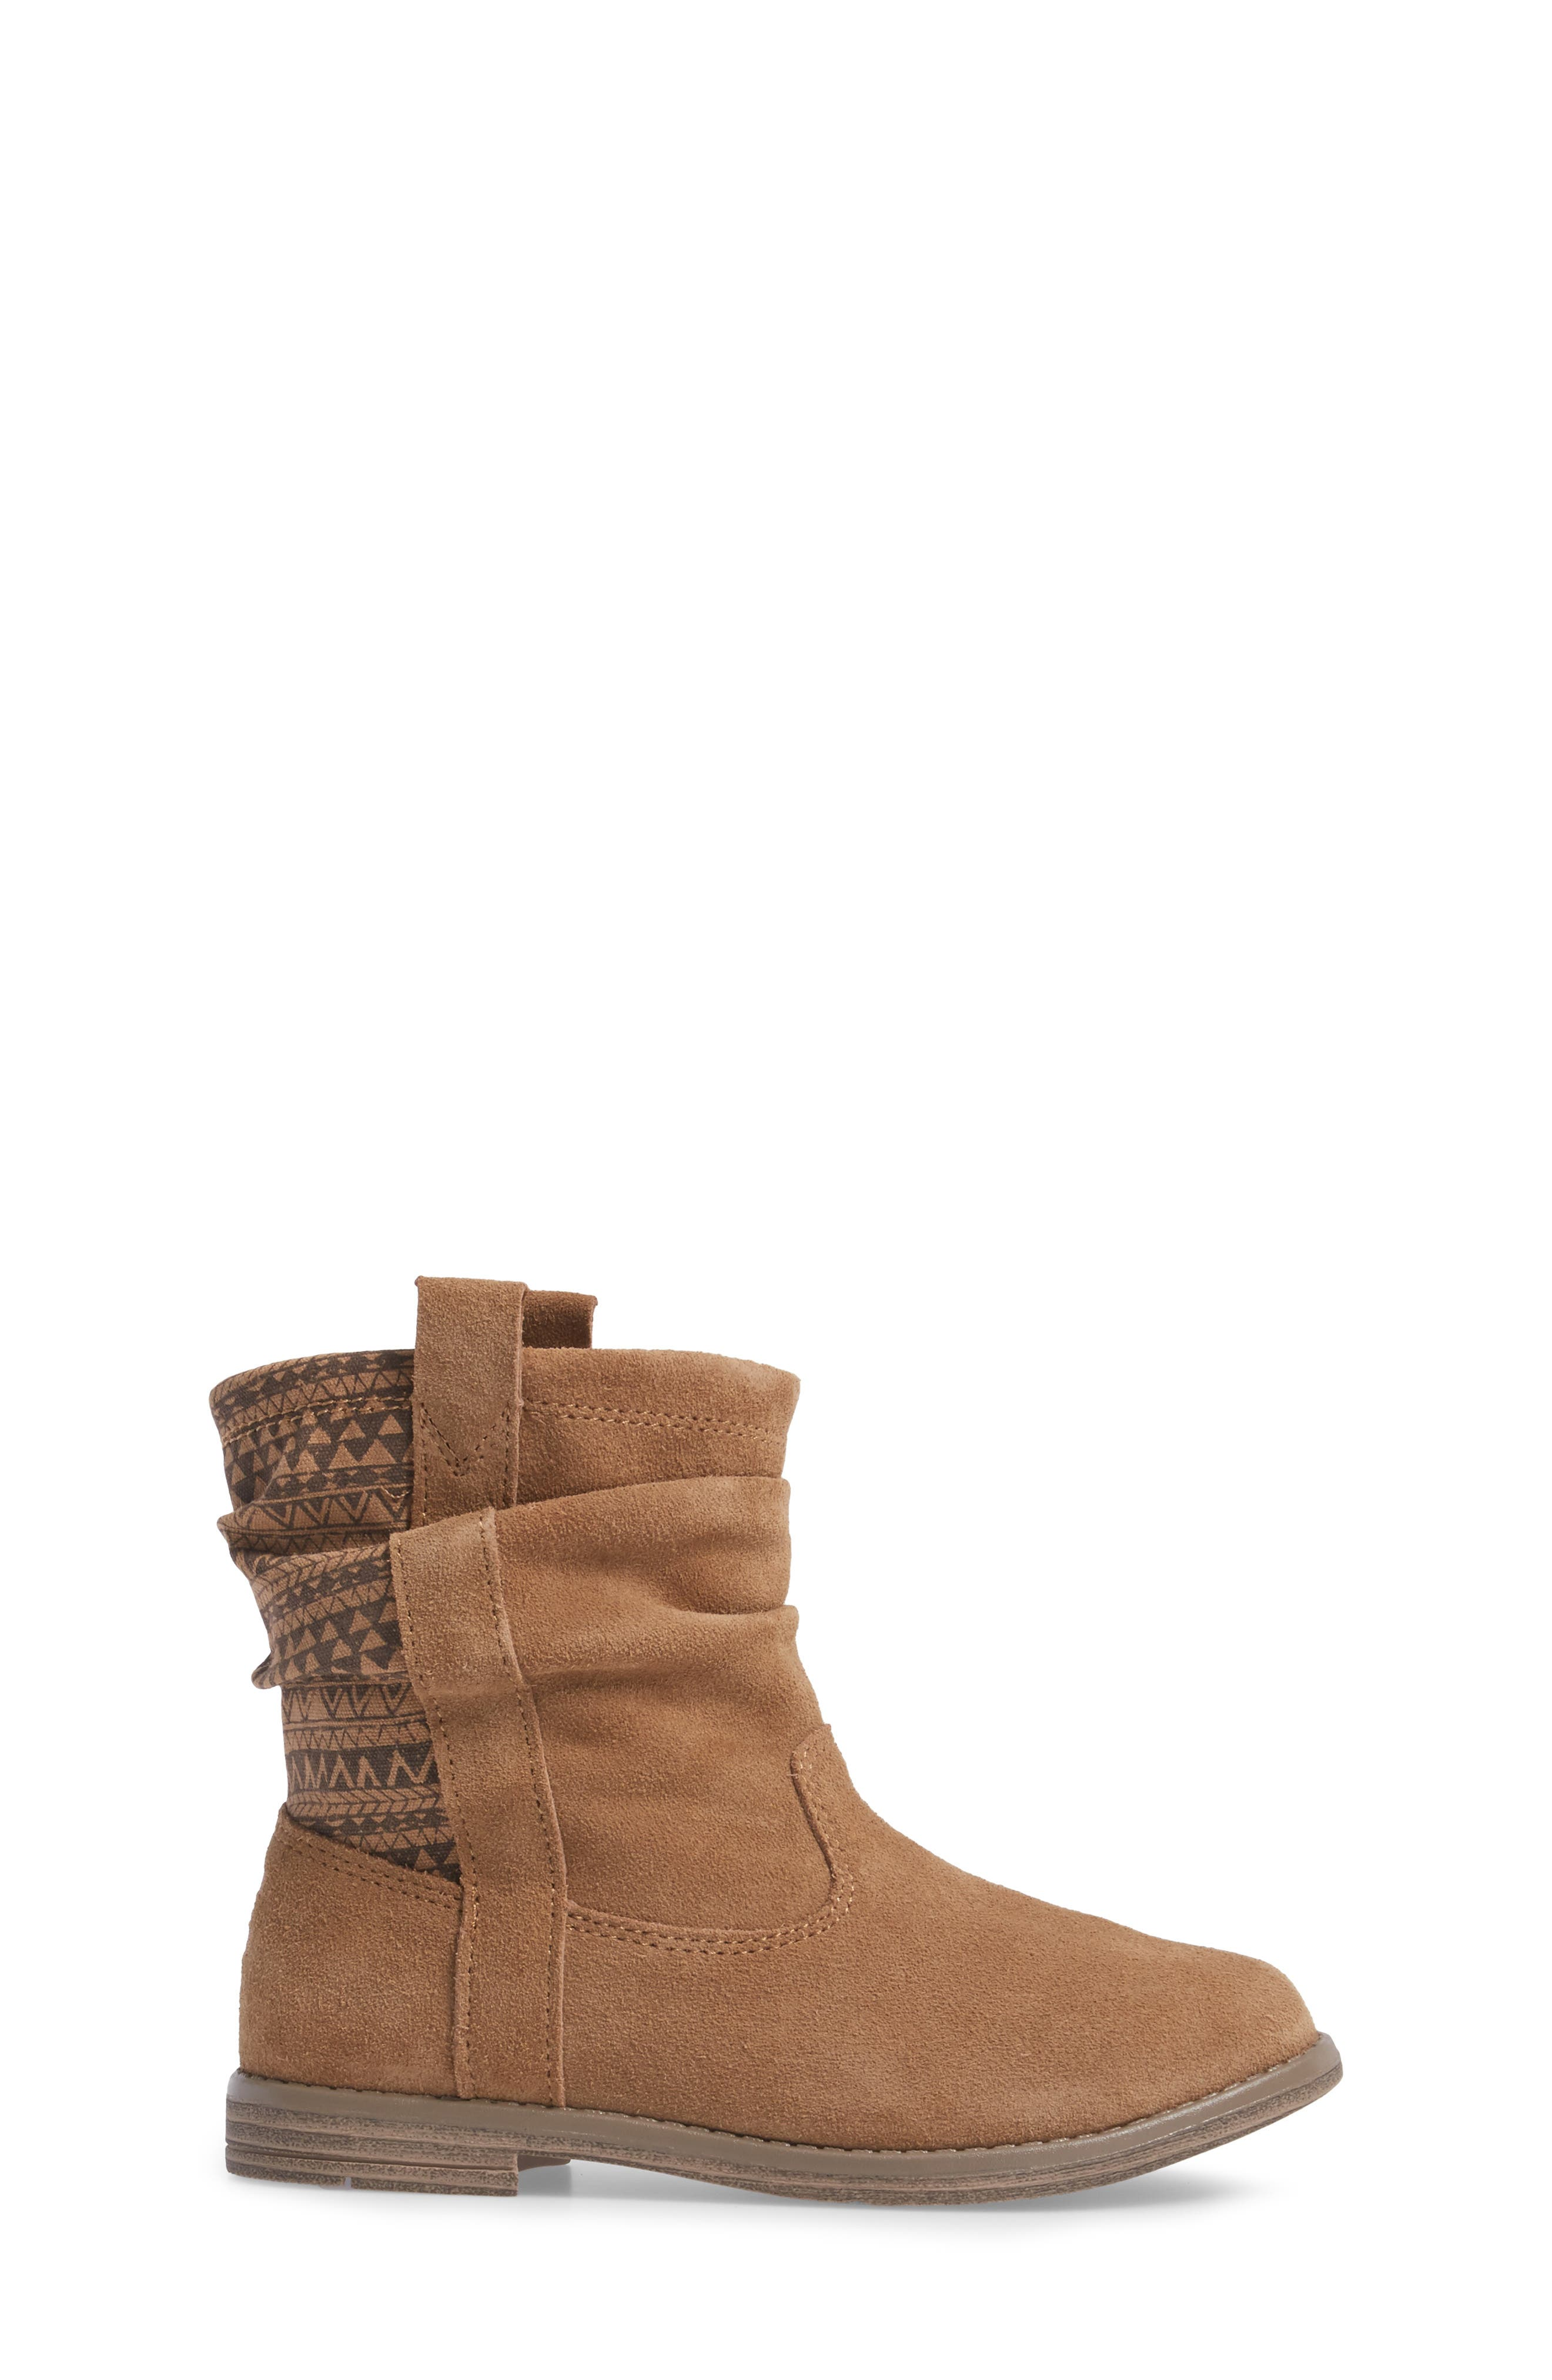 Laurel Slouchy Bootie,                             Alternate thumbnail 3, color,                             TOFFEE SUEDE